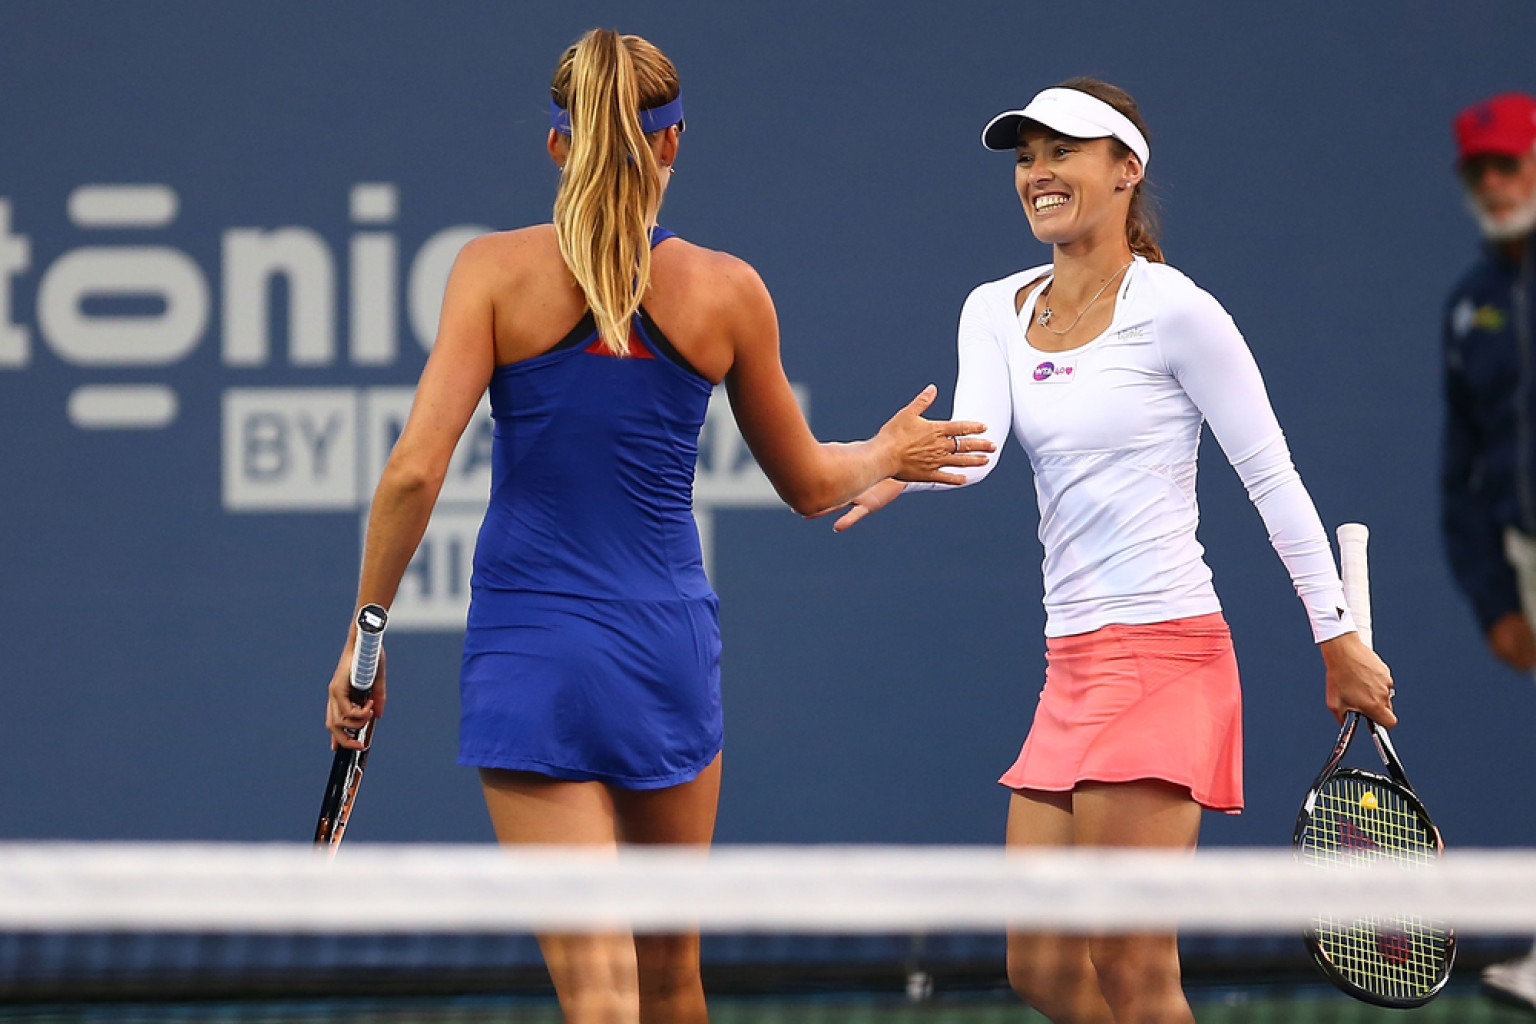 Martina Hingis Returns To WTA